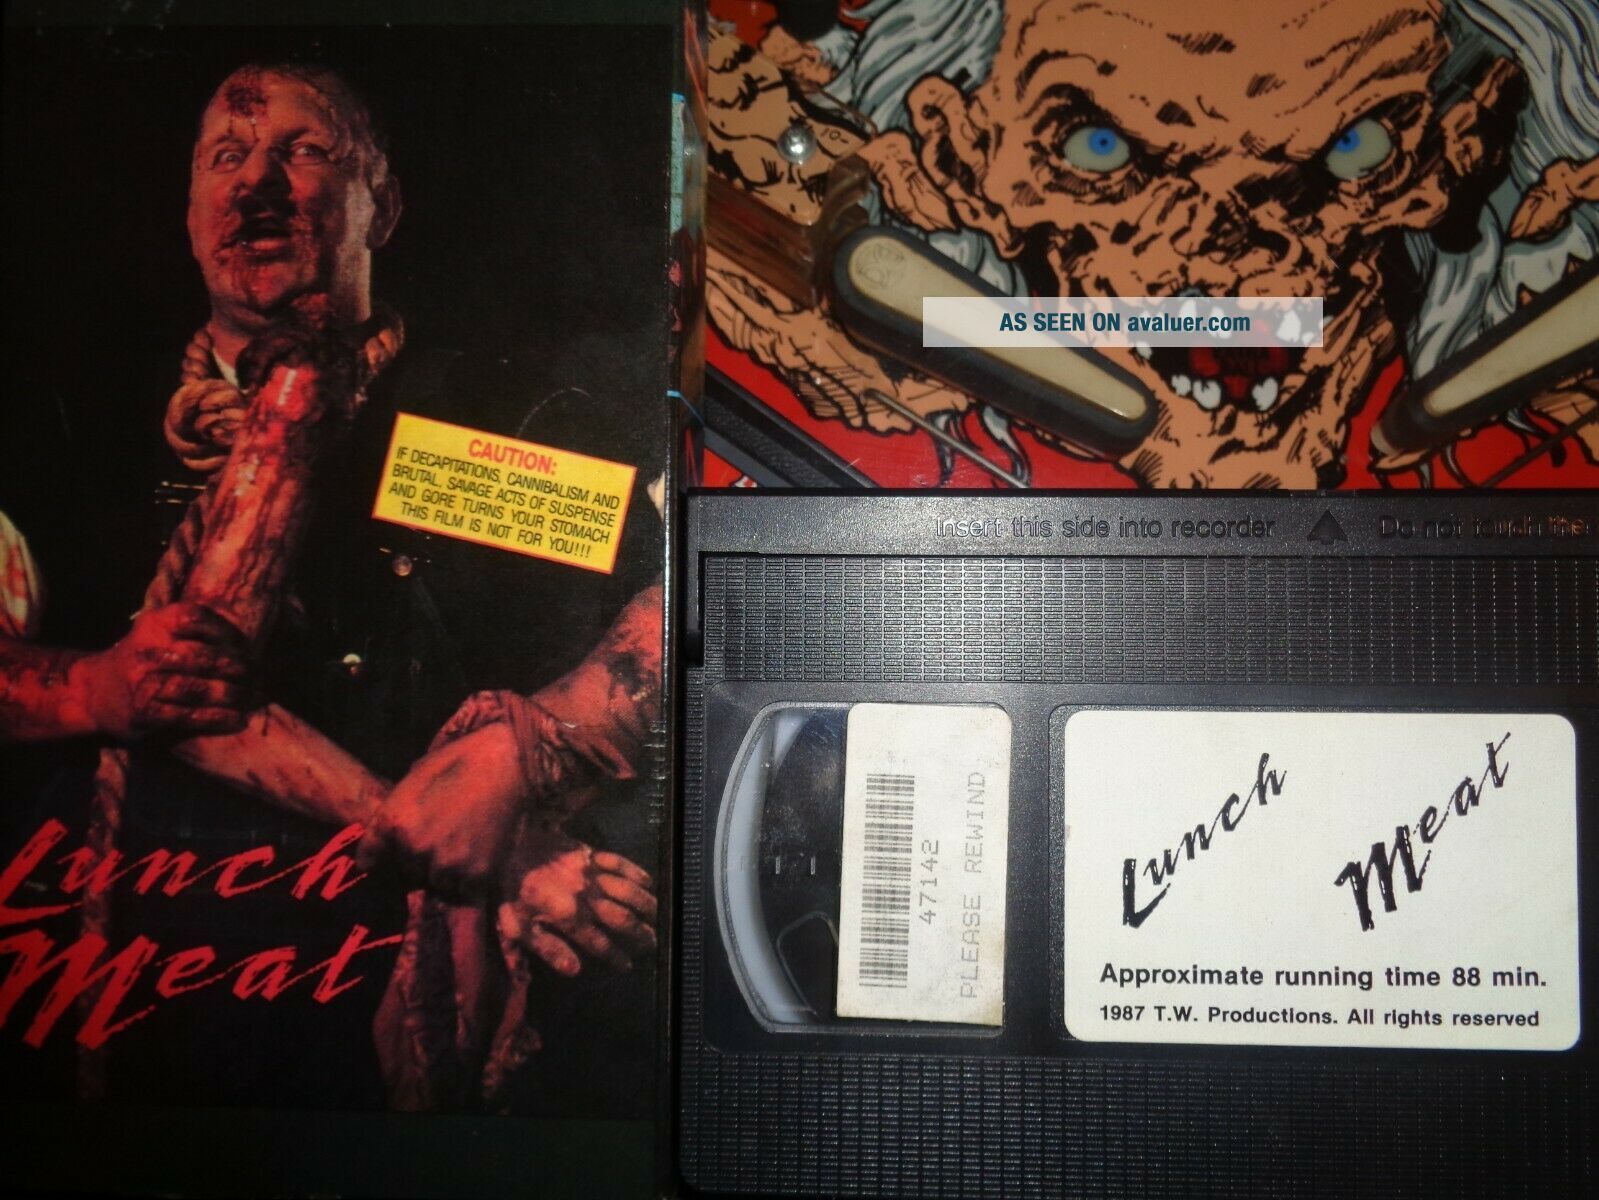 LUNCH MEAT VERY RARE VHS 1987 HORROR TAPEWORM TIGHT SLIP COVER